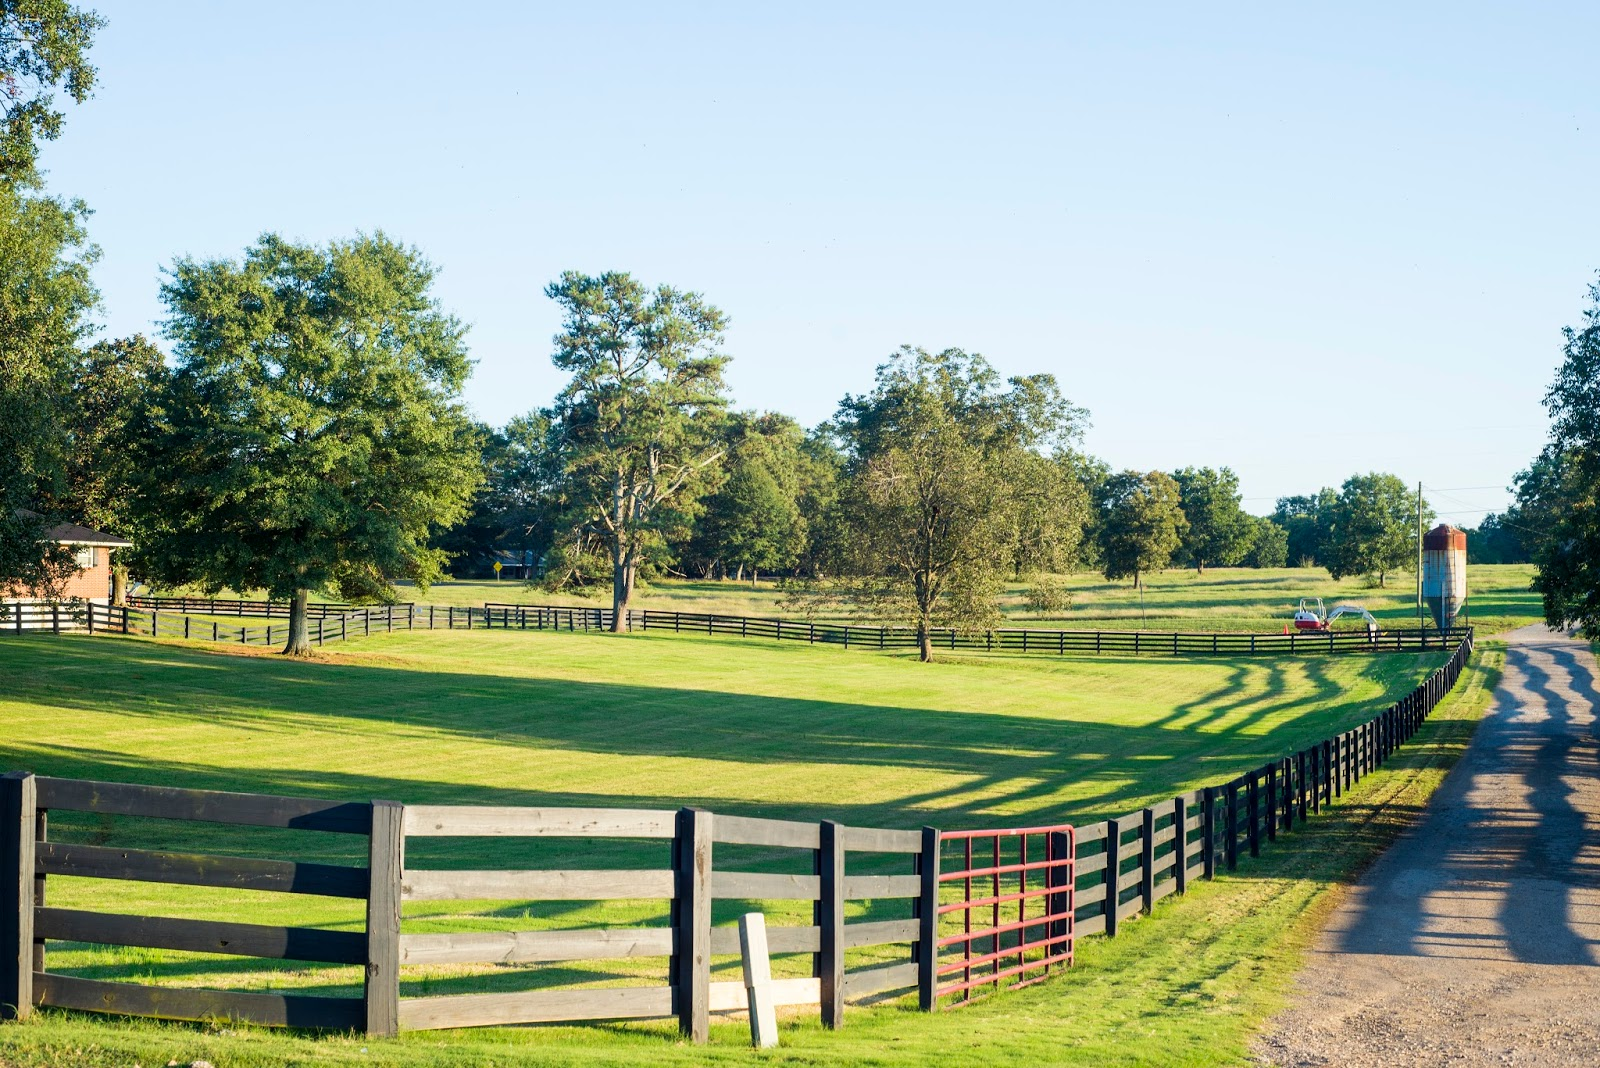 What to do for Fall: Southern Belle Farm visit